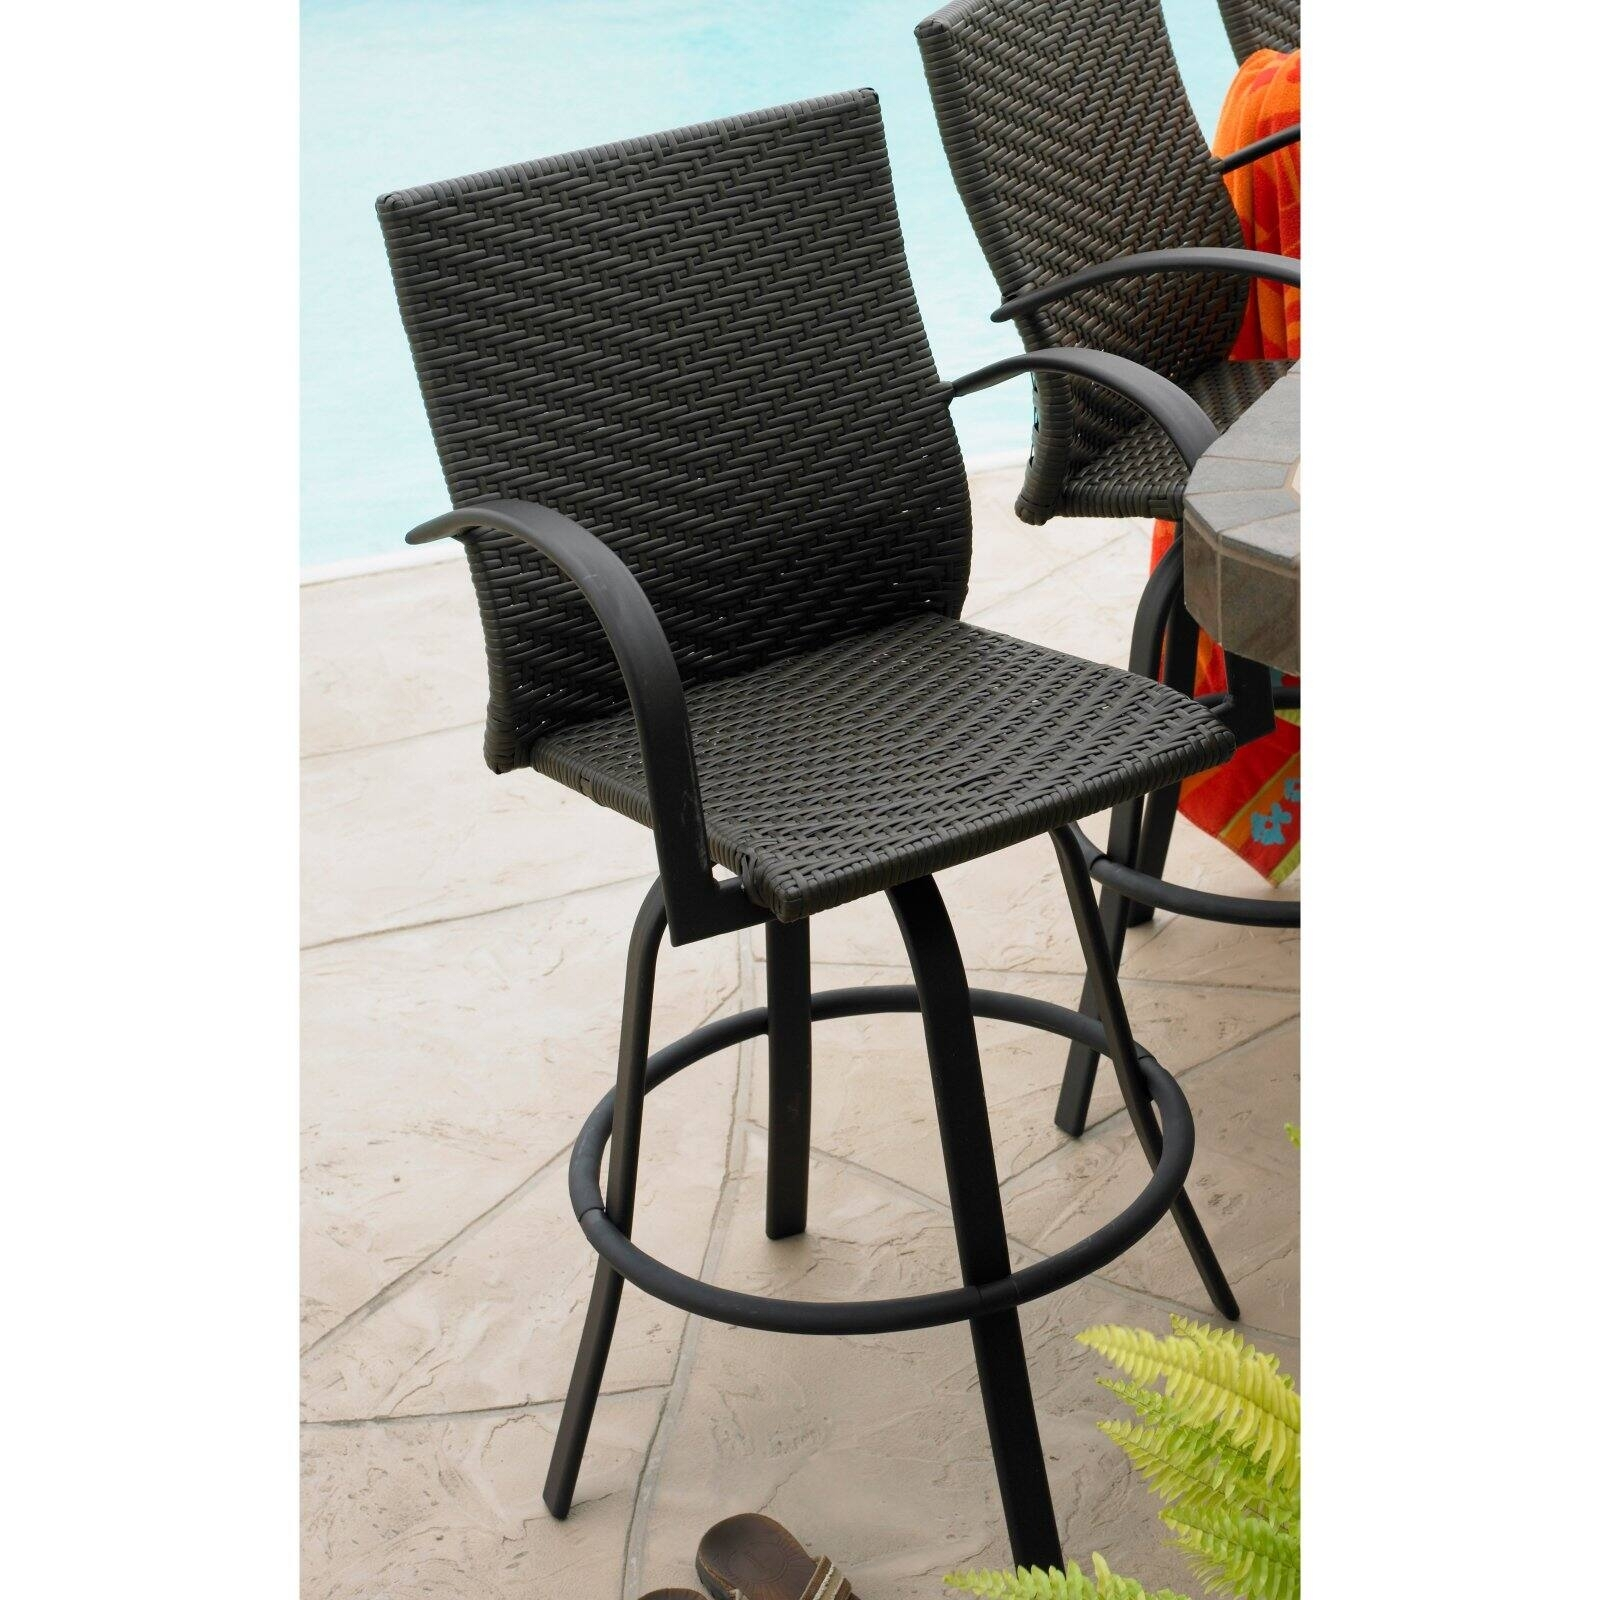 Image of: Outdoor Swivel Bar Stools Ideas On Foter